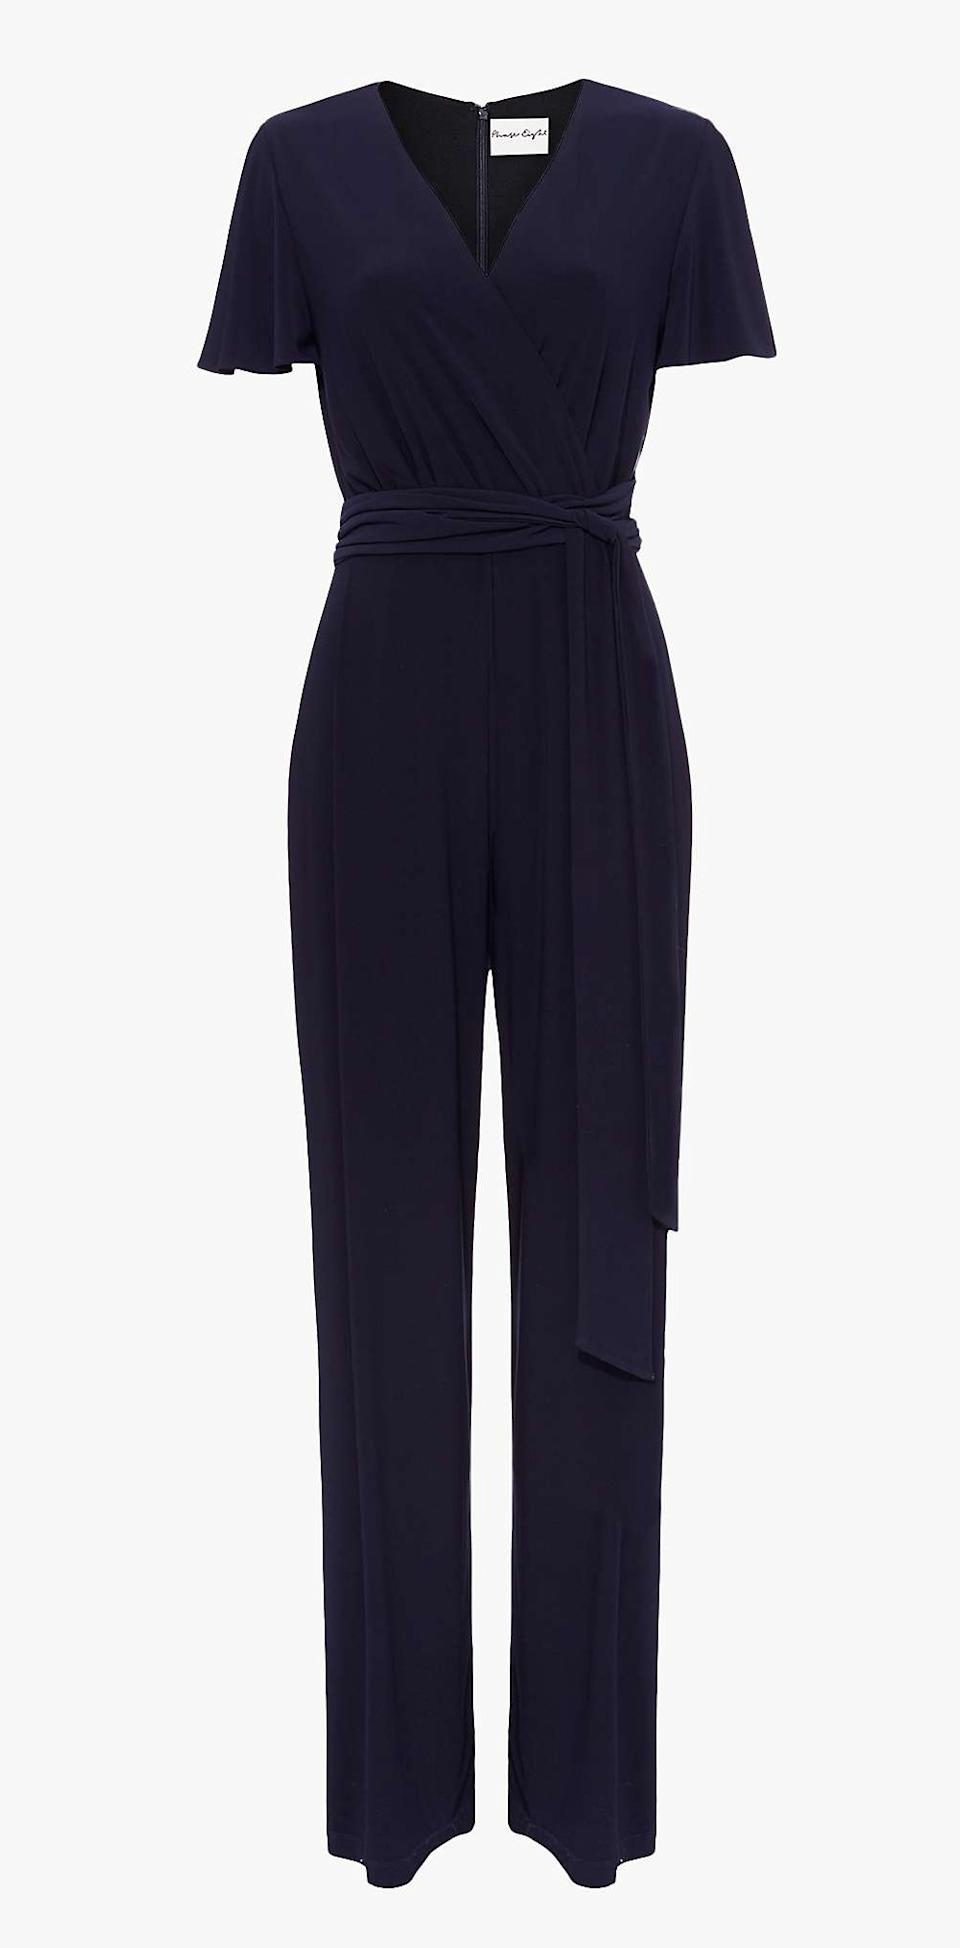 Phase Eight Andrea Jumpsuit – was £110, now £79